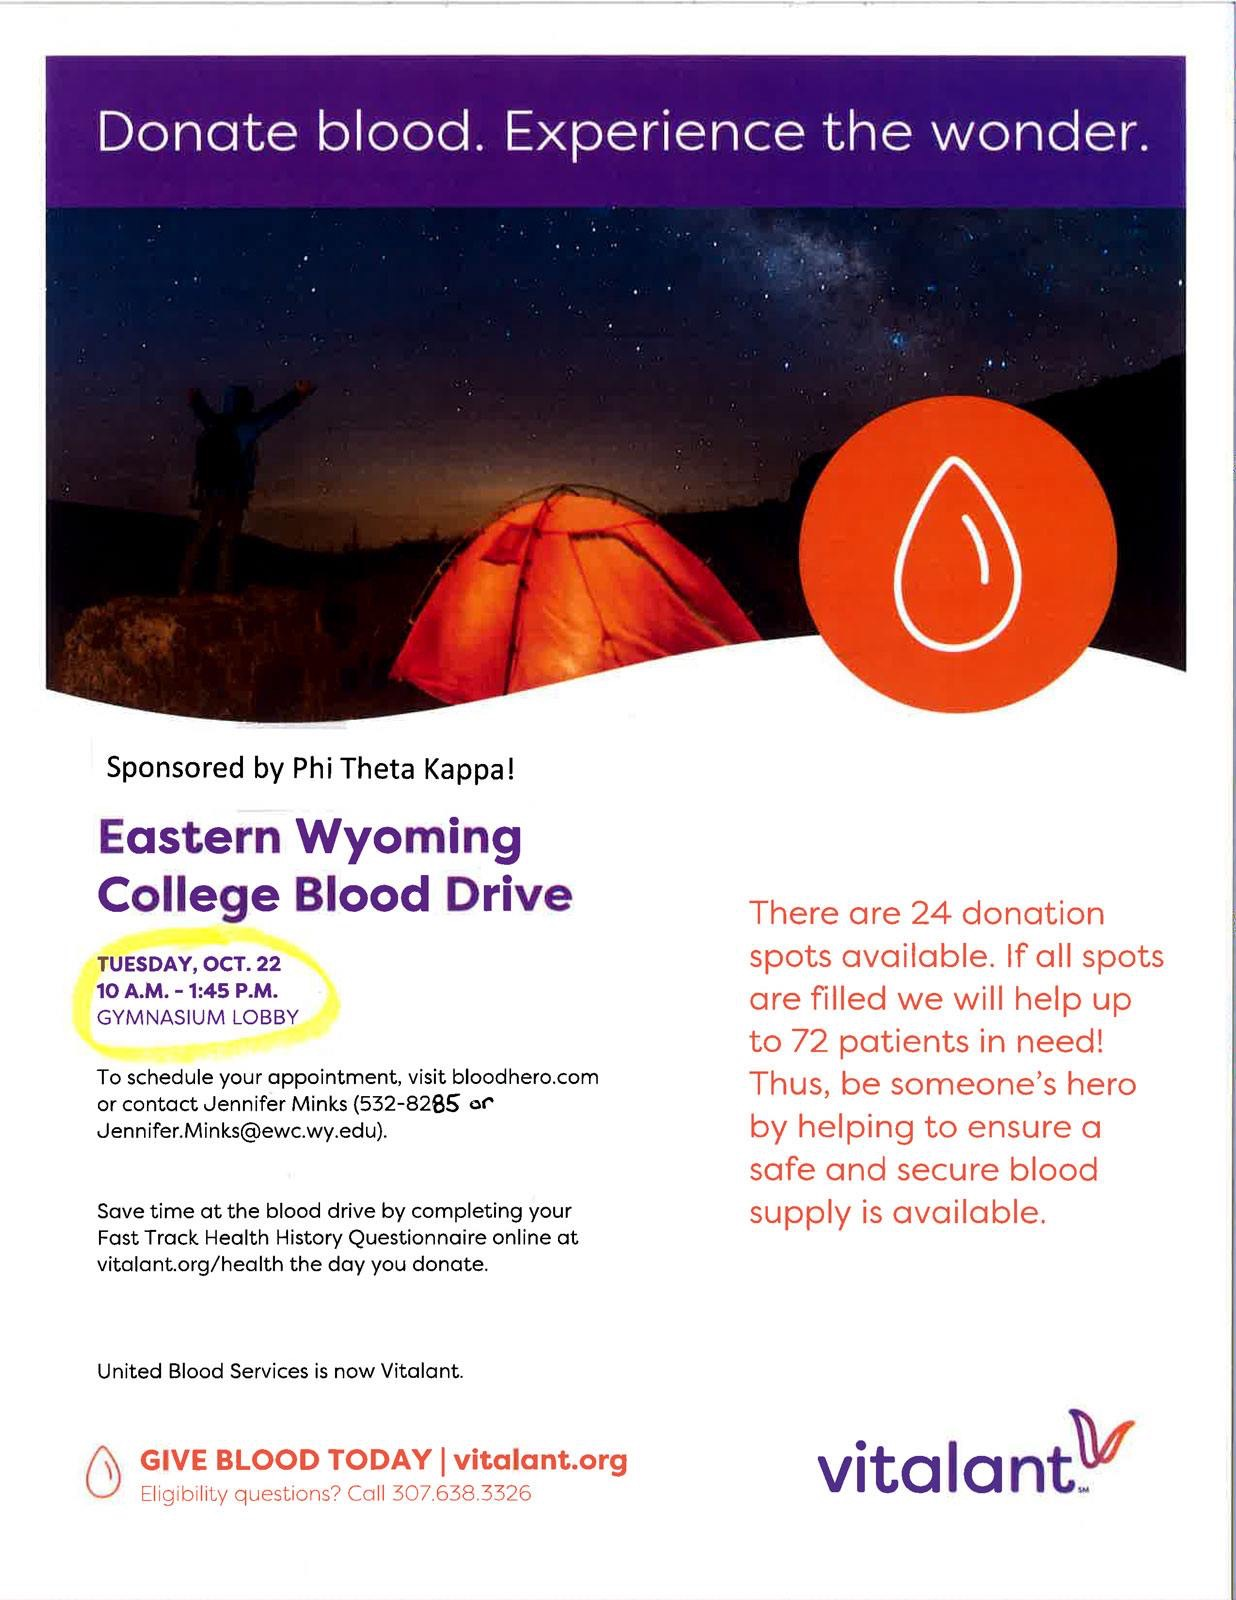 Eastern Wyoming College Blood Drive Photo